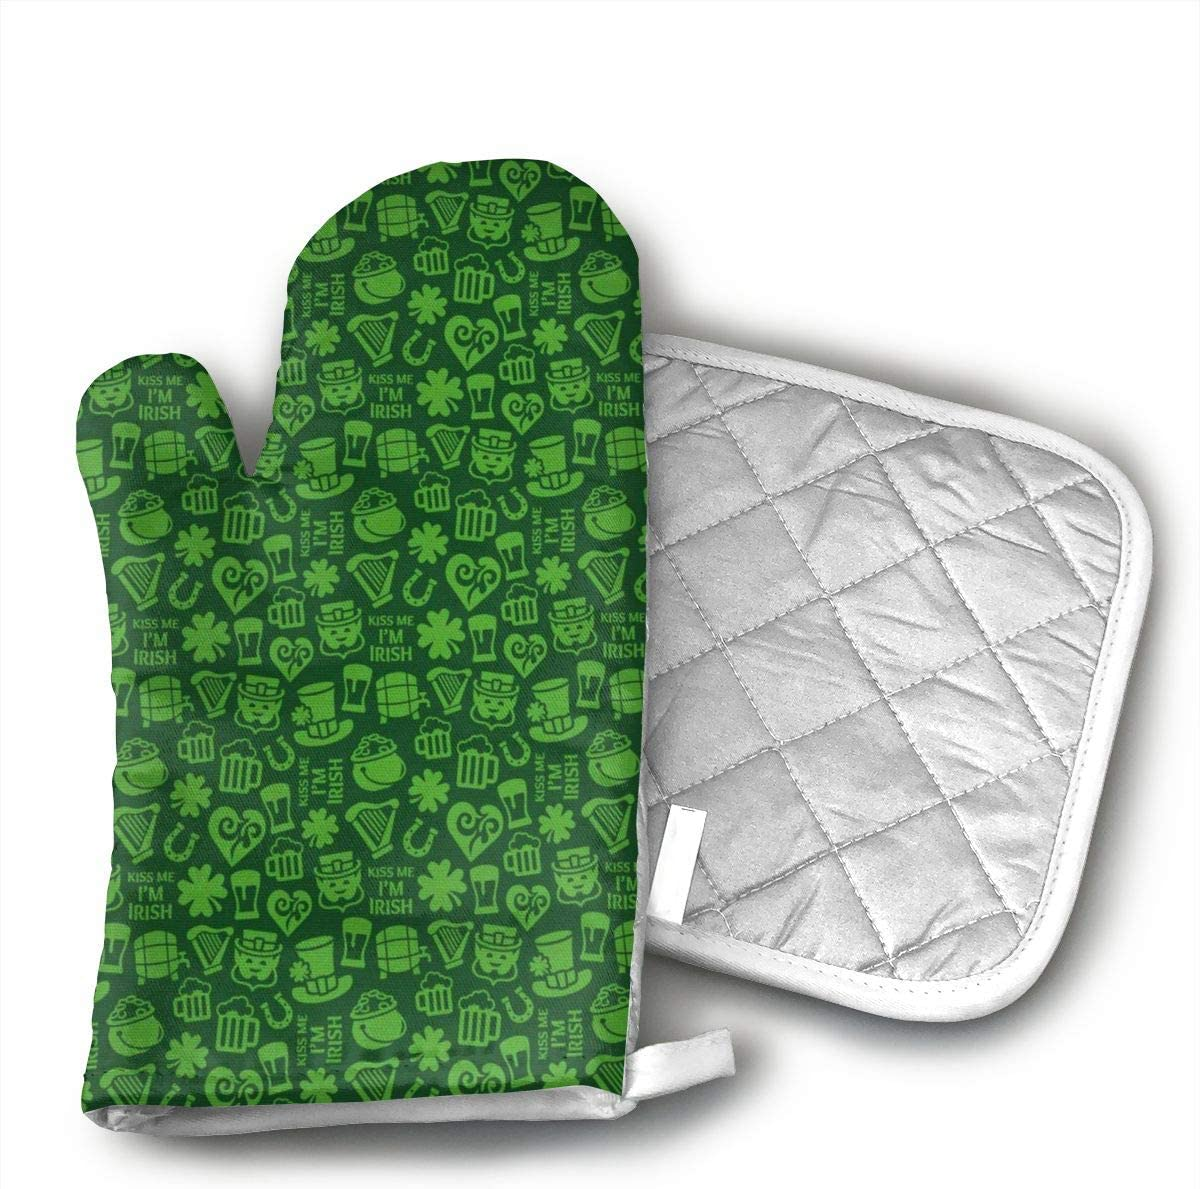 EROJfj Irish Shamrock Hat Oven Mitts and Potholders BBQ Gloves-Oven Mitts and Pot Holders Non-Slip Cooking Gloves for Cooking Baking Grilling